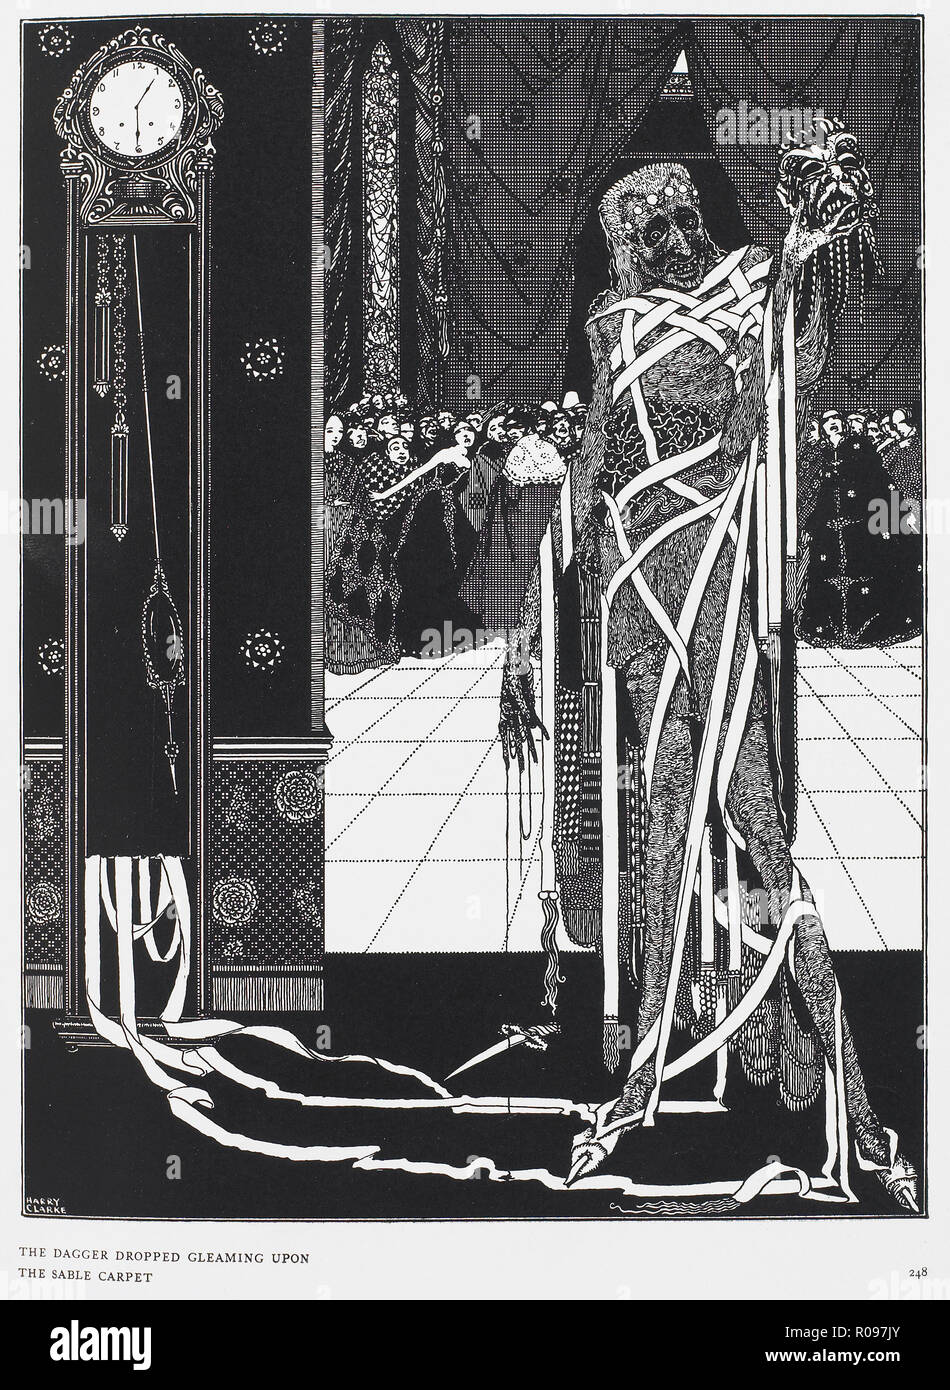 THE MASQUE OF THE RED DEATH, 1842 Gothic Horror short story by Edgar Allan Poe. Illustration by Harry Clarke for a 1919 edition. - Stock Image